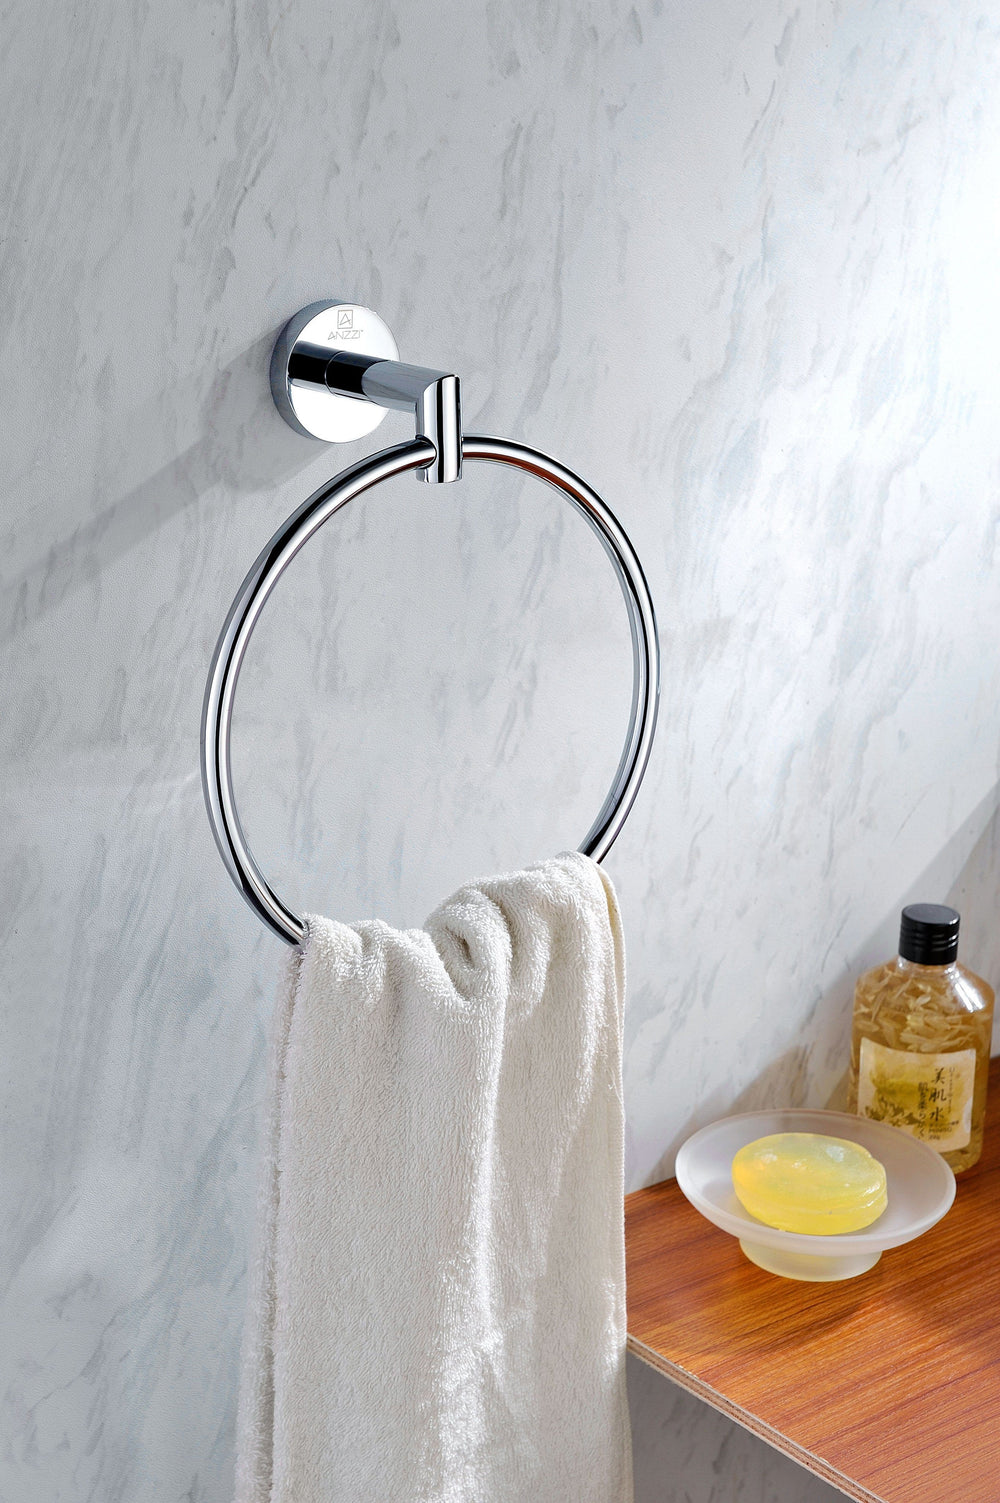 ANZZI Caster 2 Series Towel Ring in Polished Chrome Towel Ring ANZZI